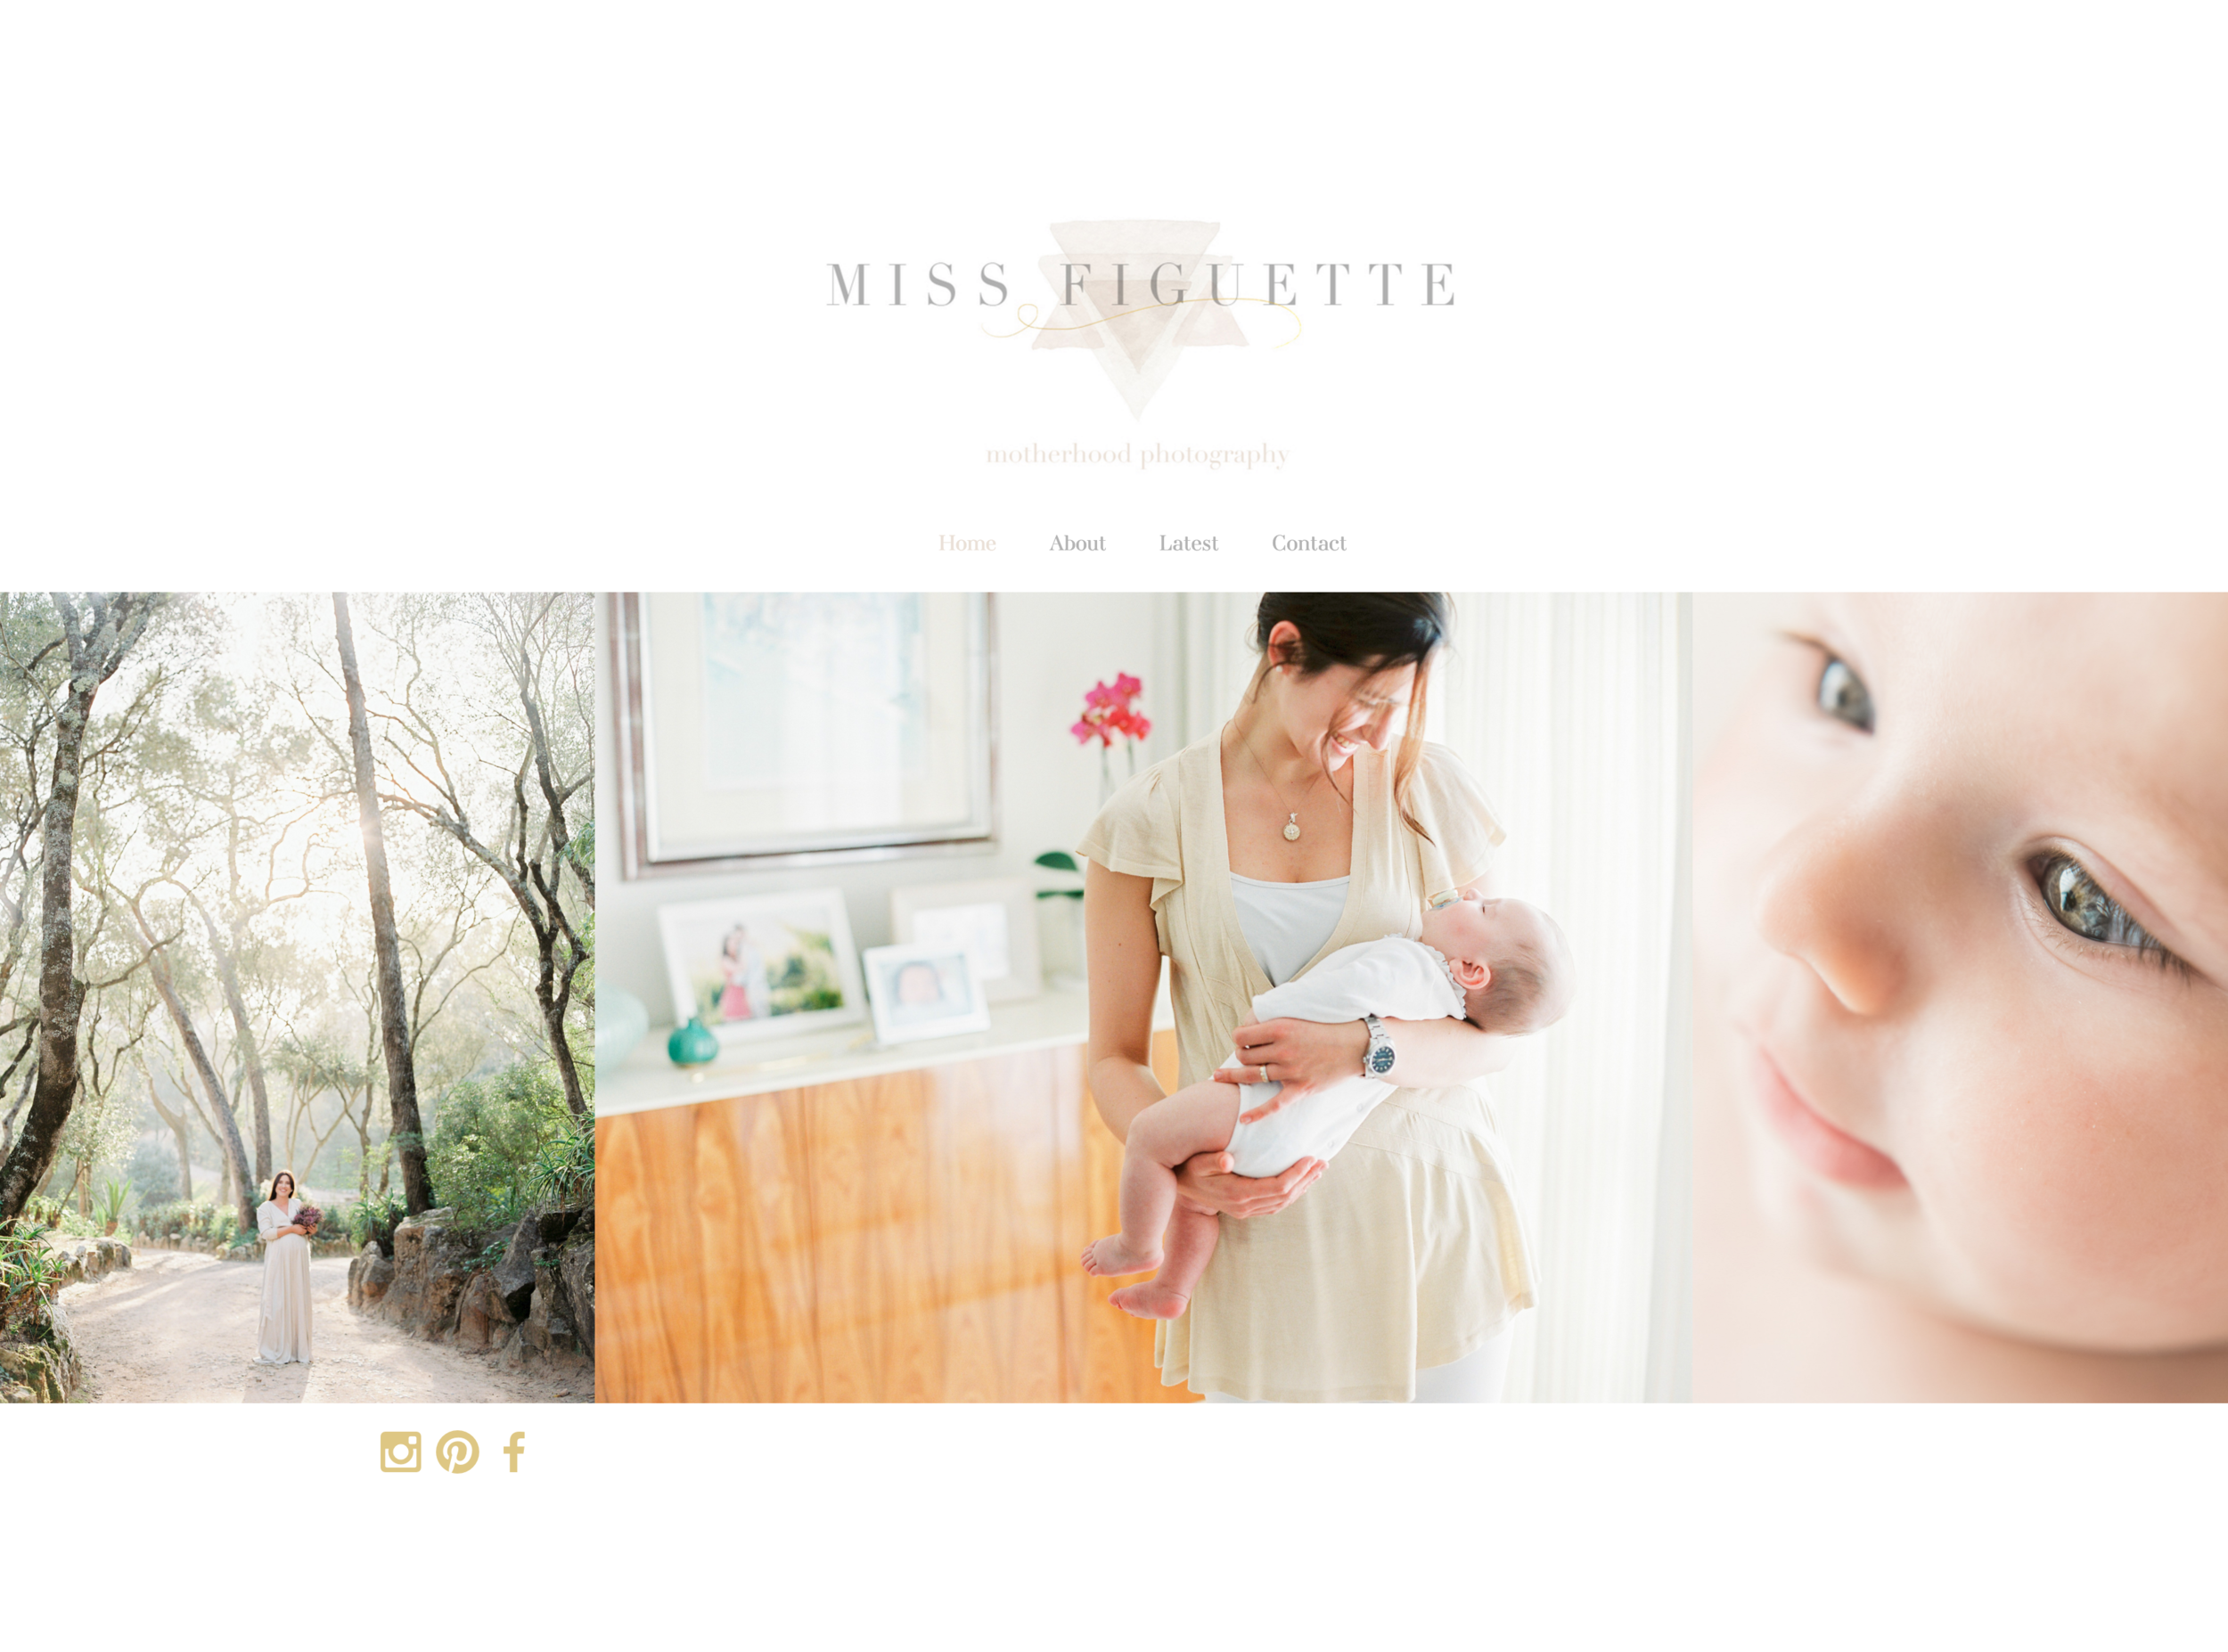 maternity_photography_baby_Miss Figuette